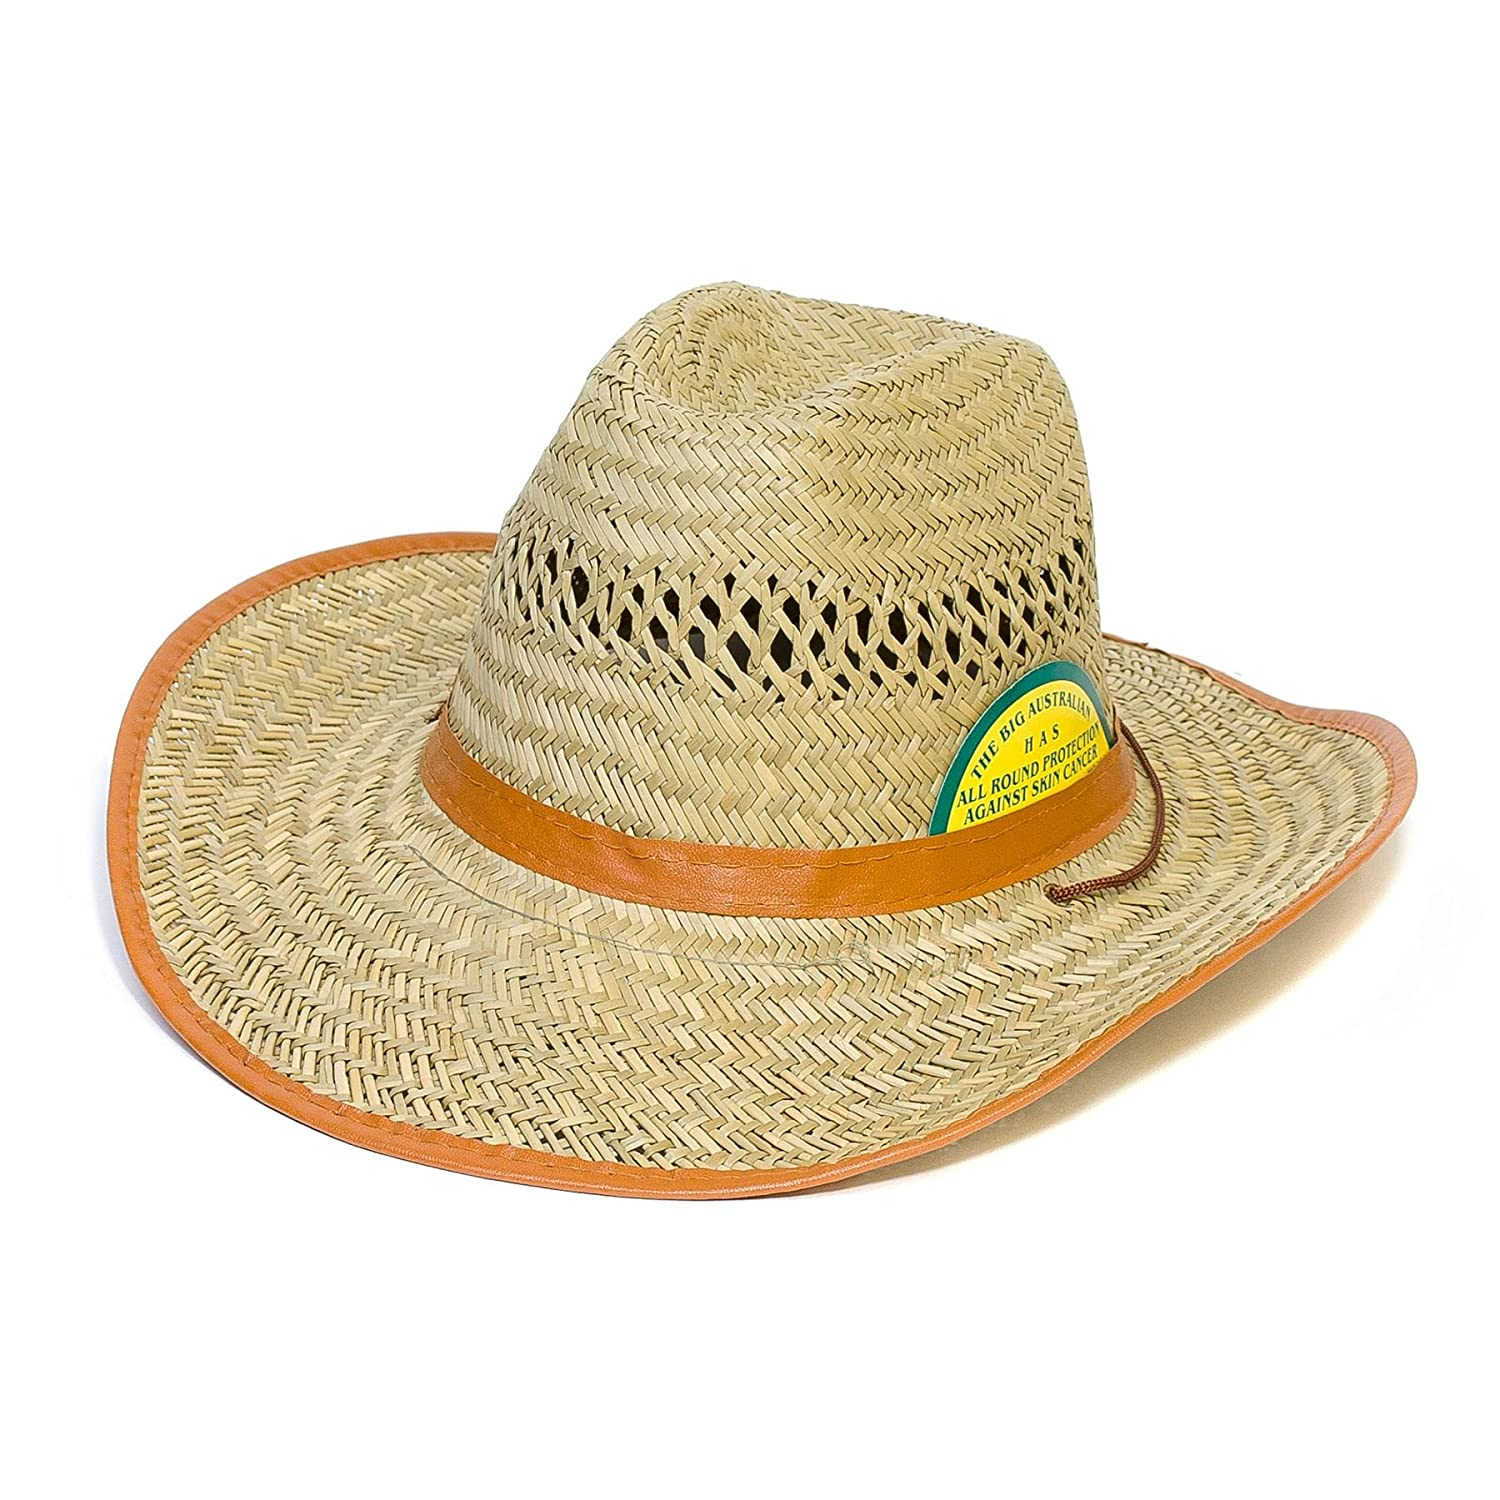 Cowboy Straw Hat (One Size, Natural) Hat To Socks